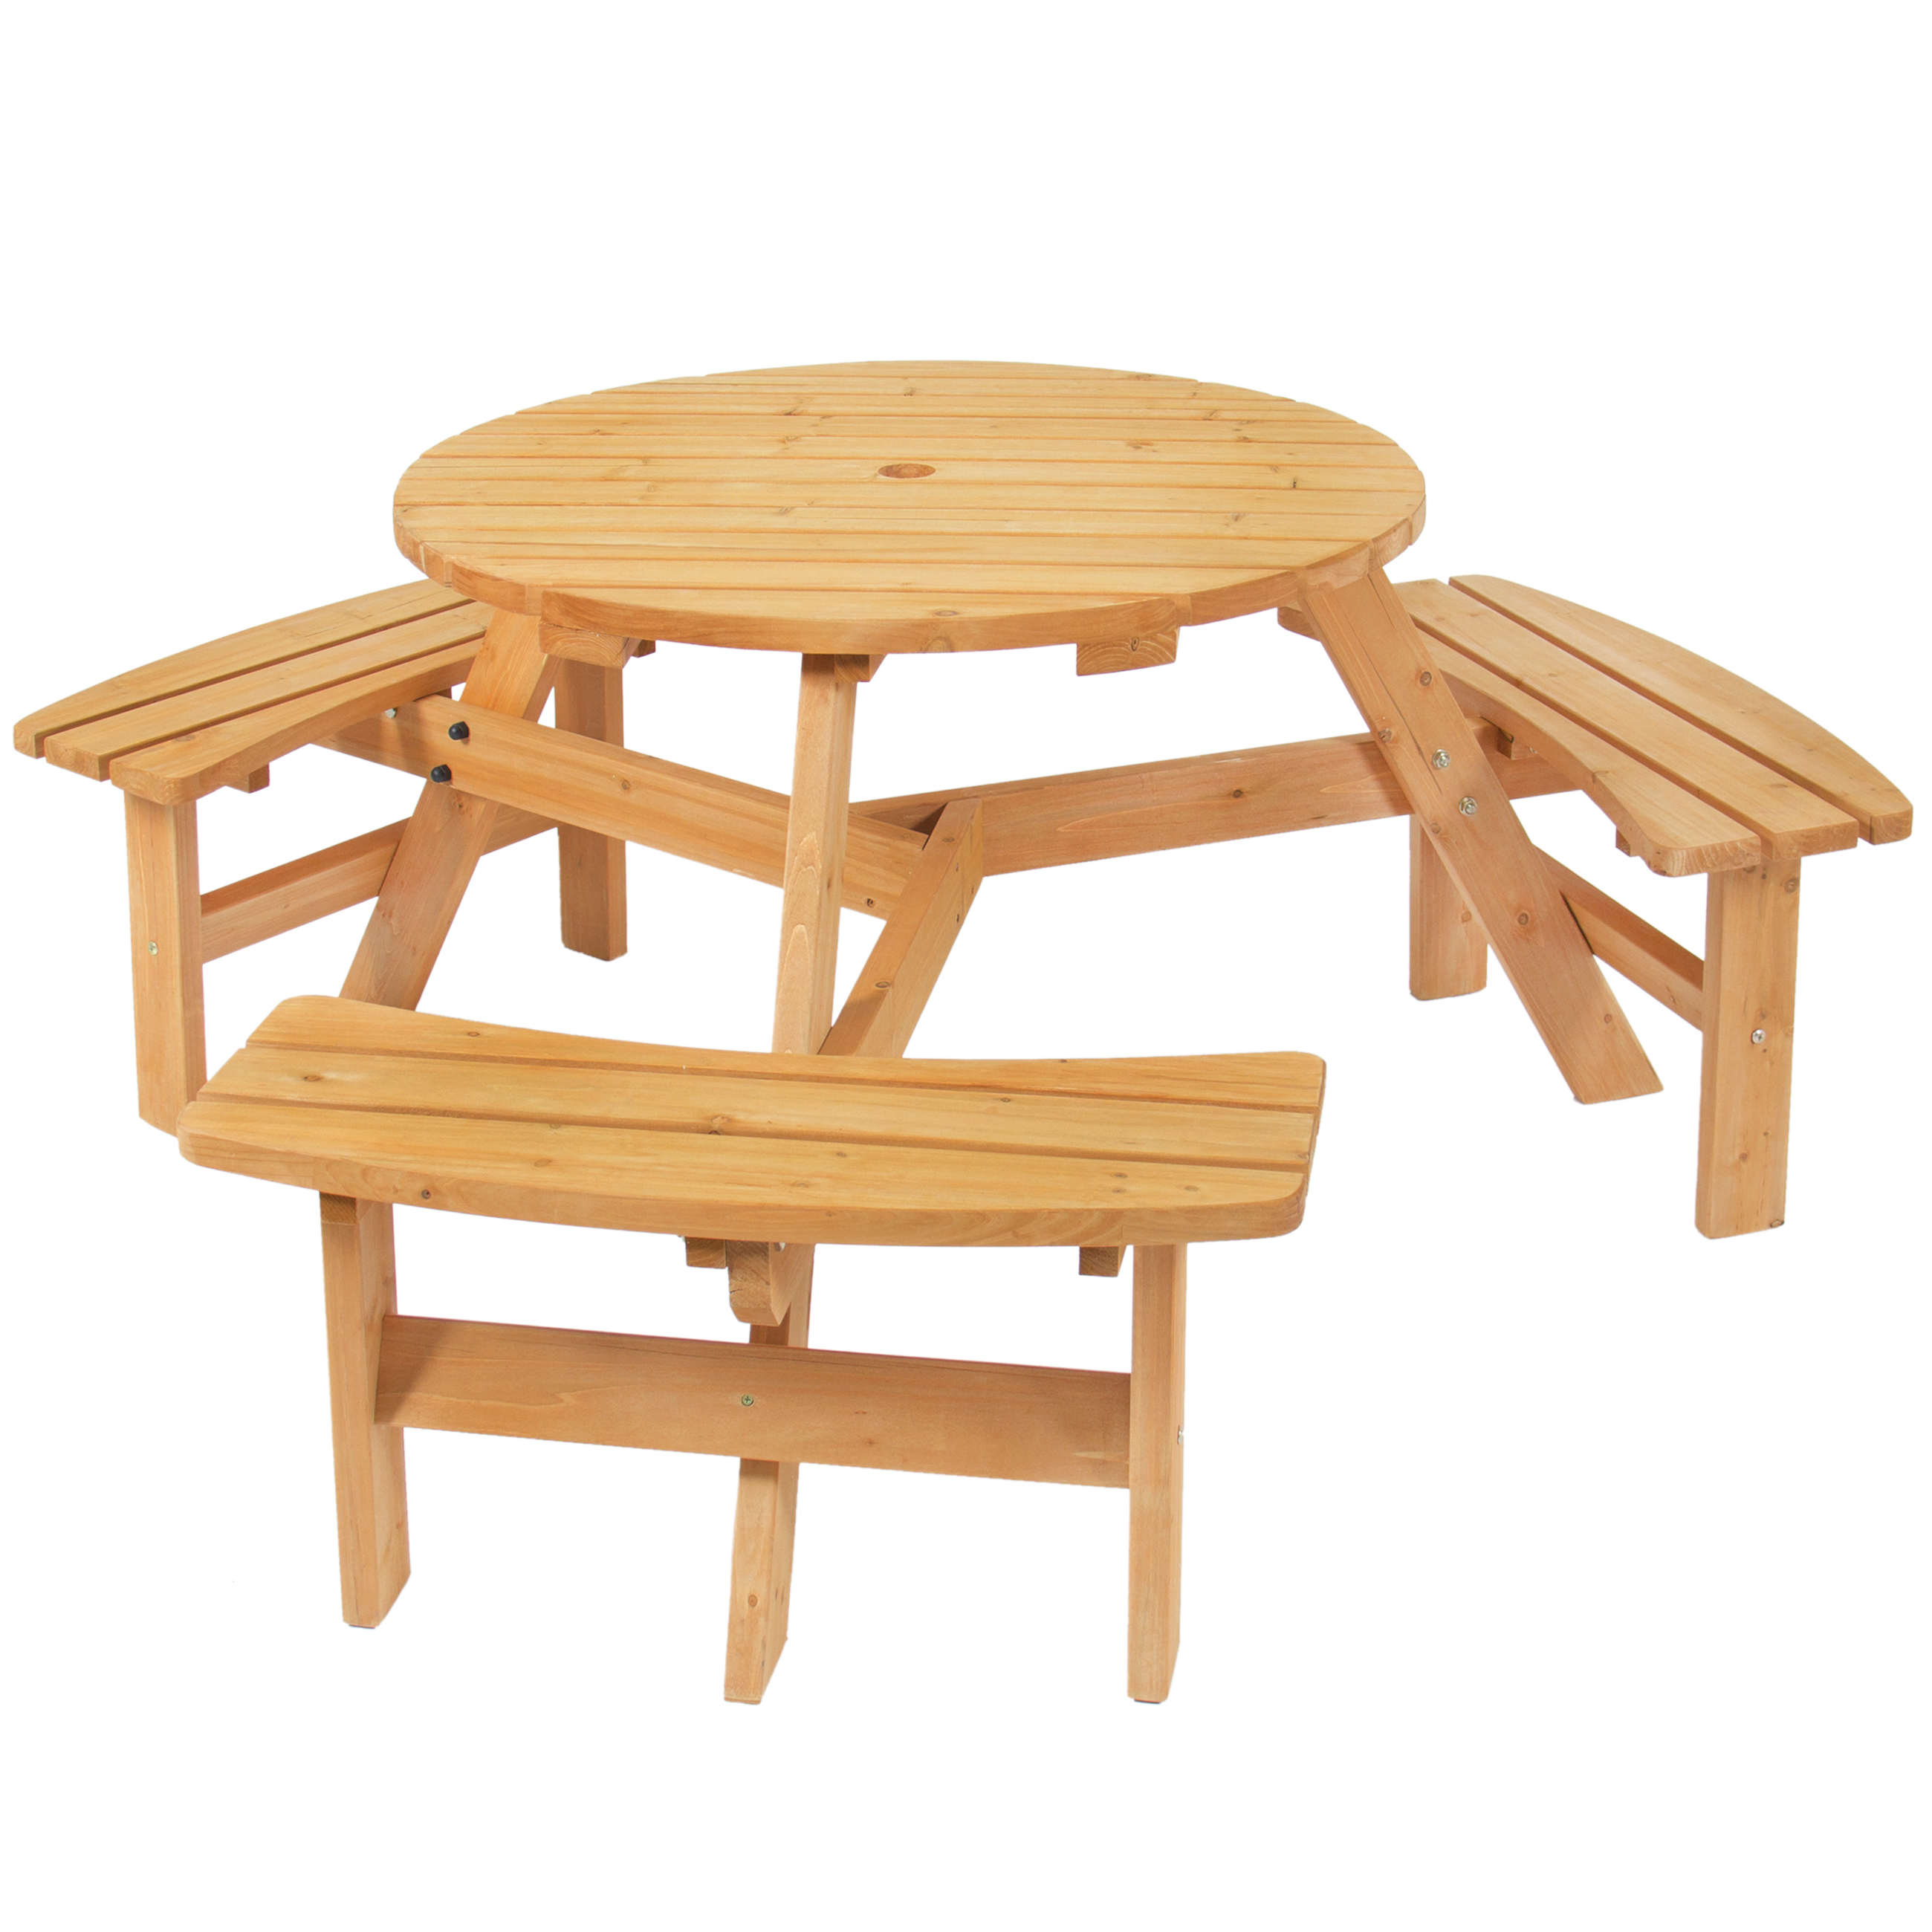 Best Choice Products Outdoor 6 Person Wood Picnic Table Natural Finish by